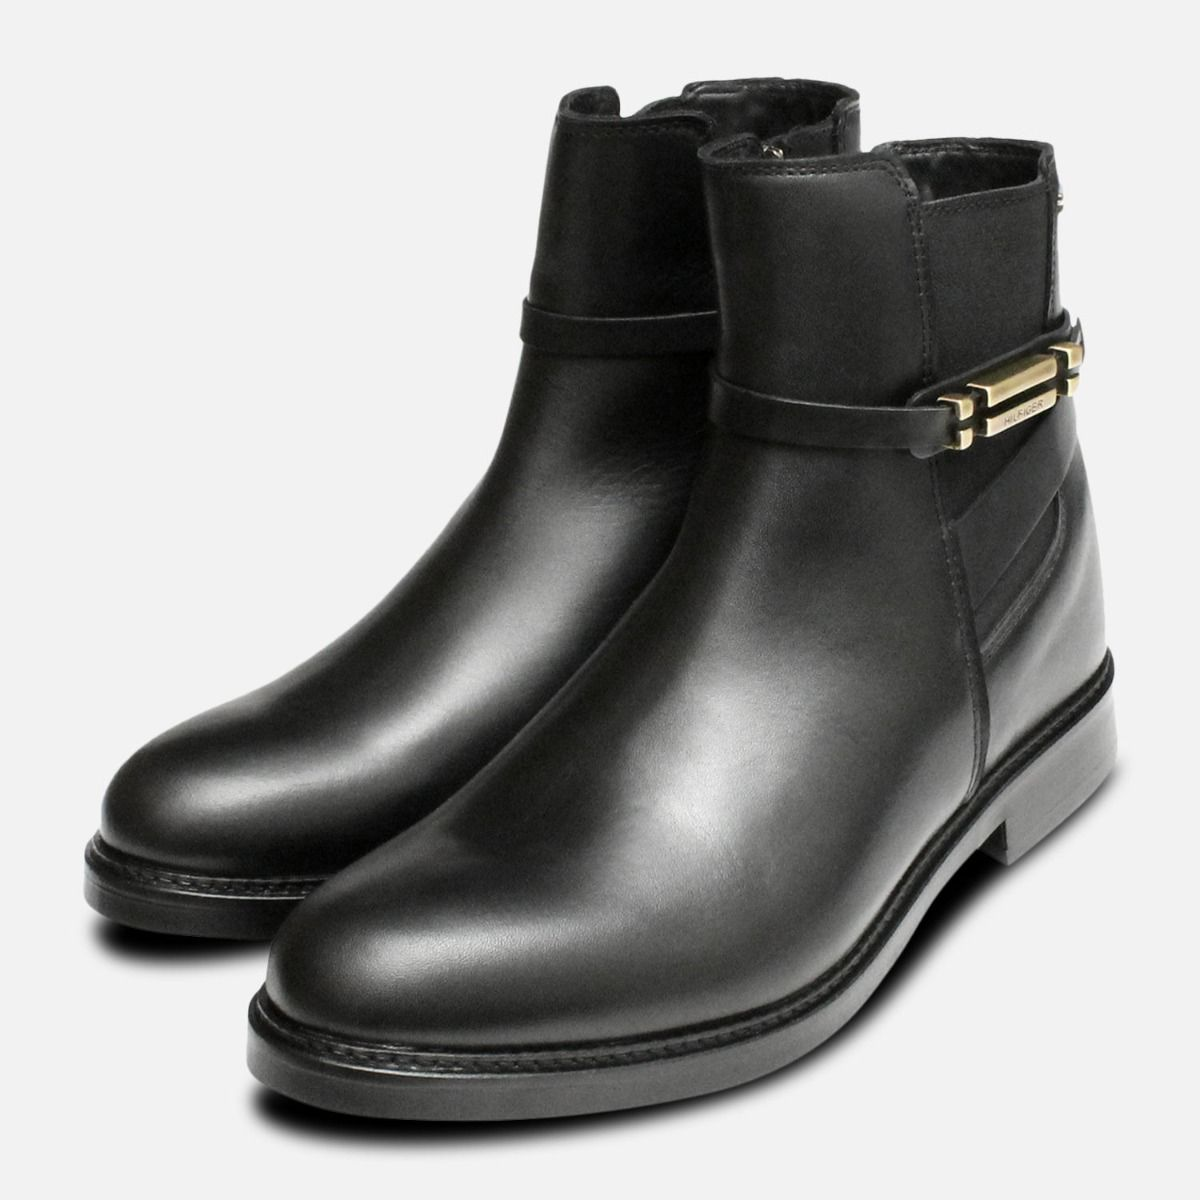 pretty nice 999cd 1cff6 Waterproof Tommy Hilfiger Black Holly Chelsea Boots